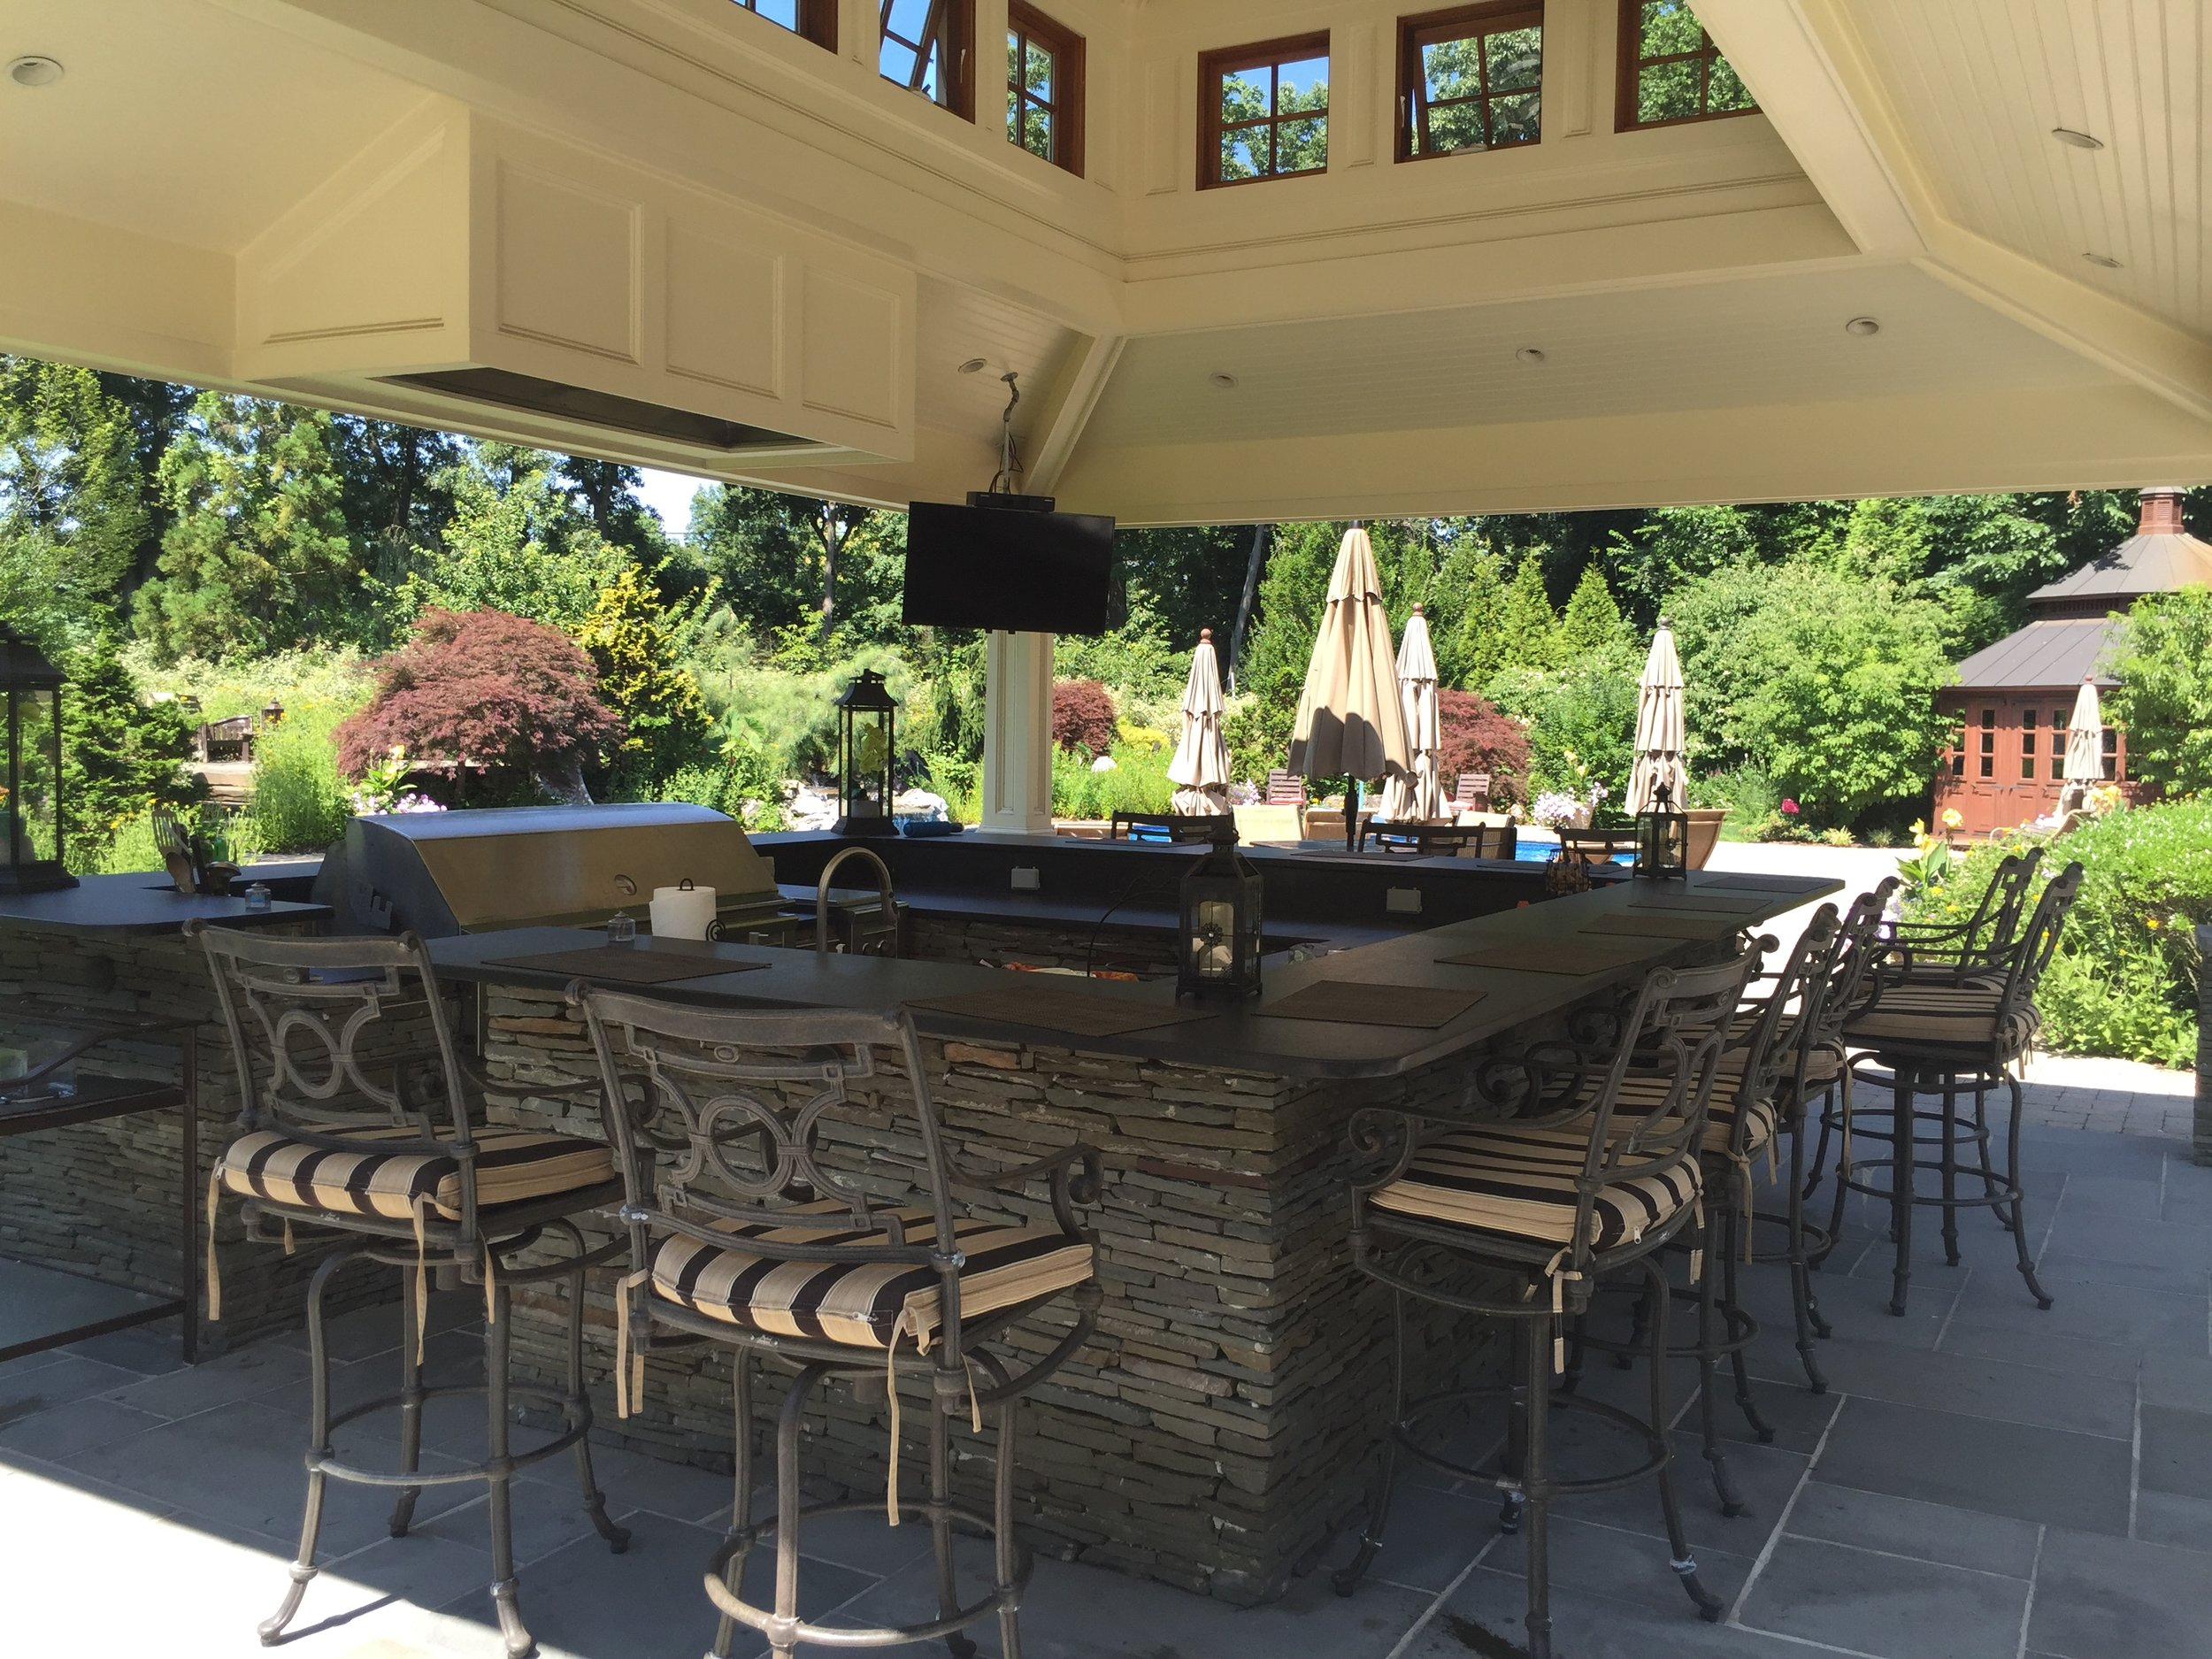 Top landscape design company with outdoor kitchen a in Long Island, NY